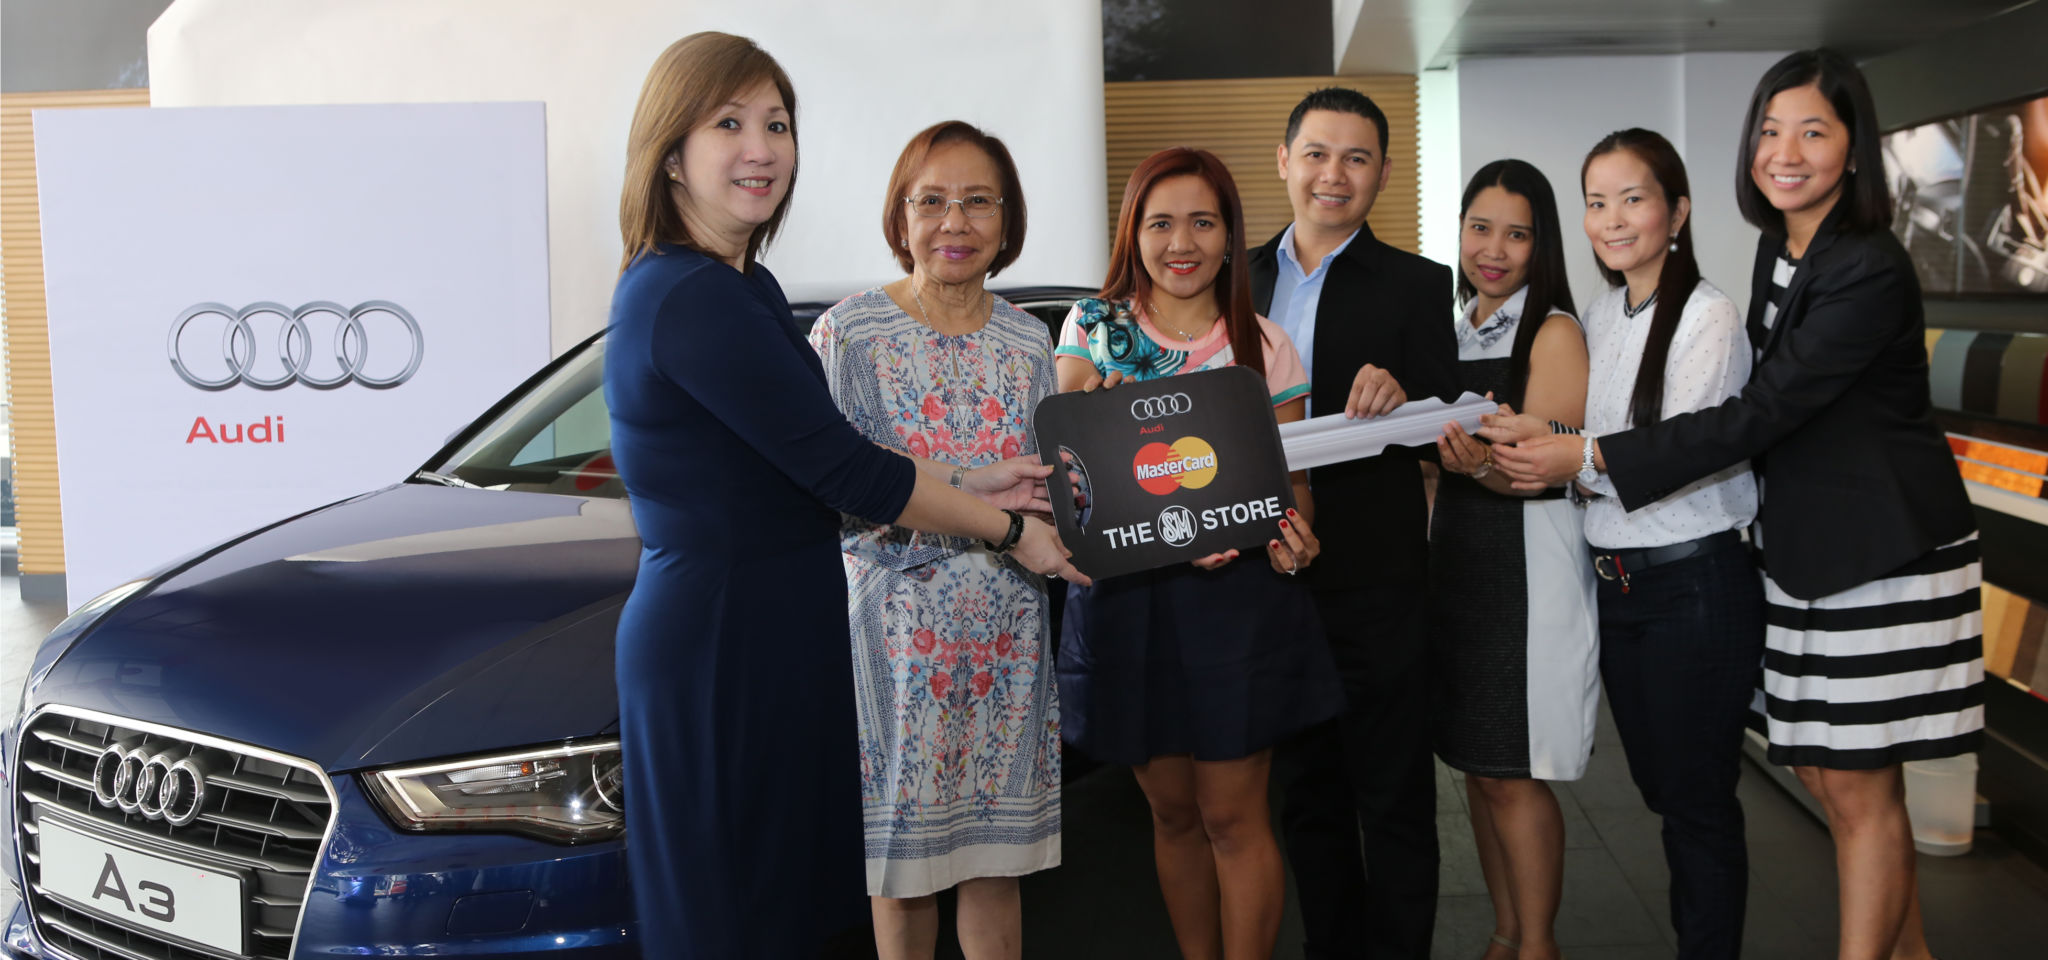 The SM Store and Mastercard Promotion Audi Car Winners